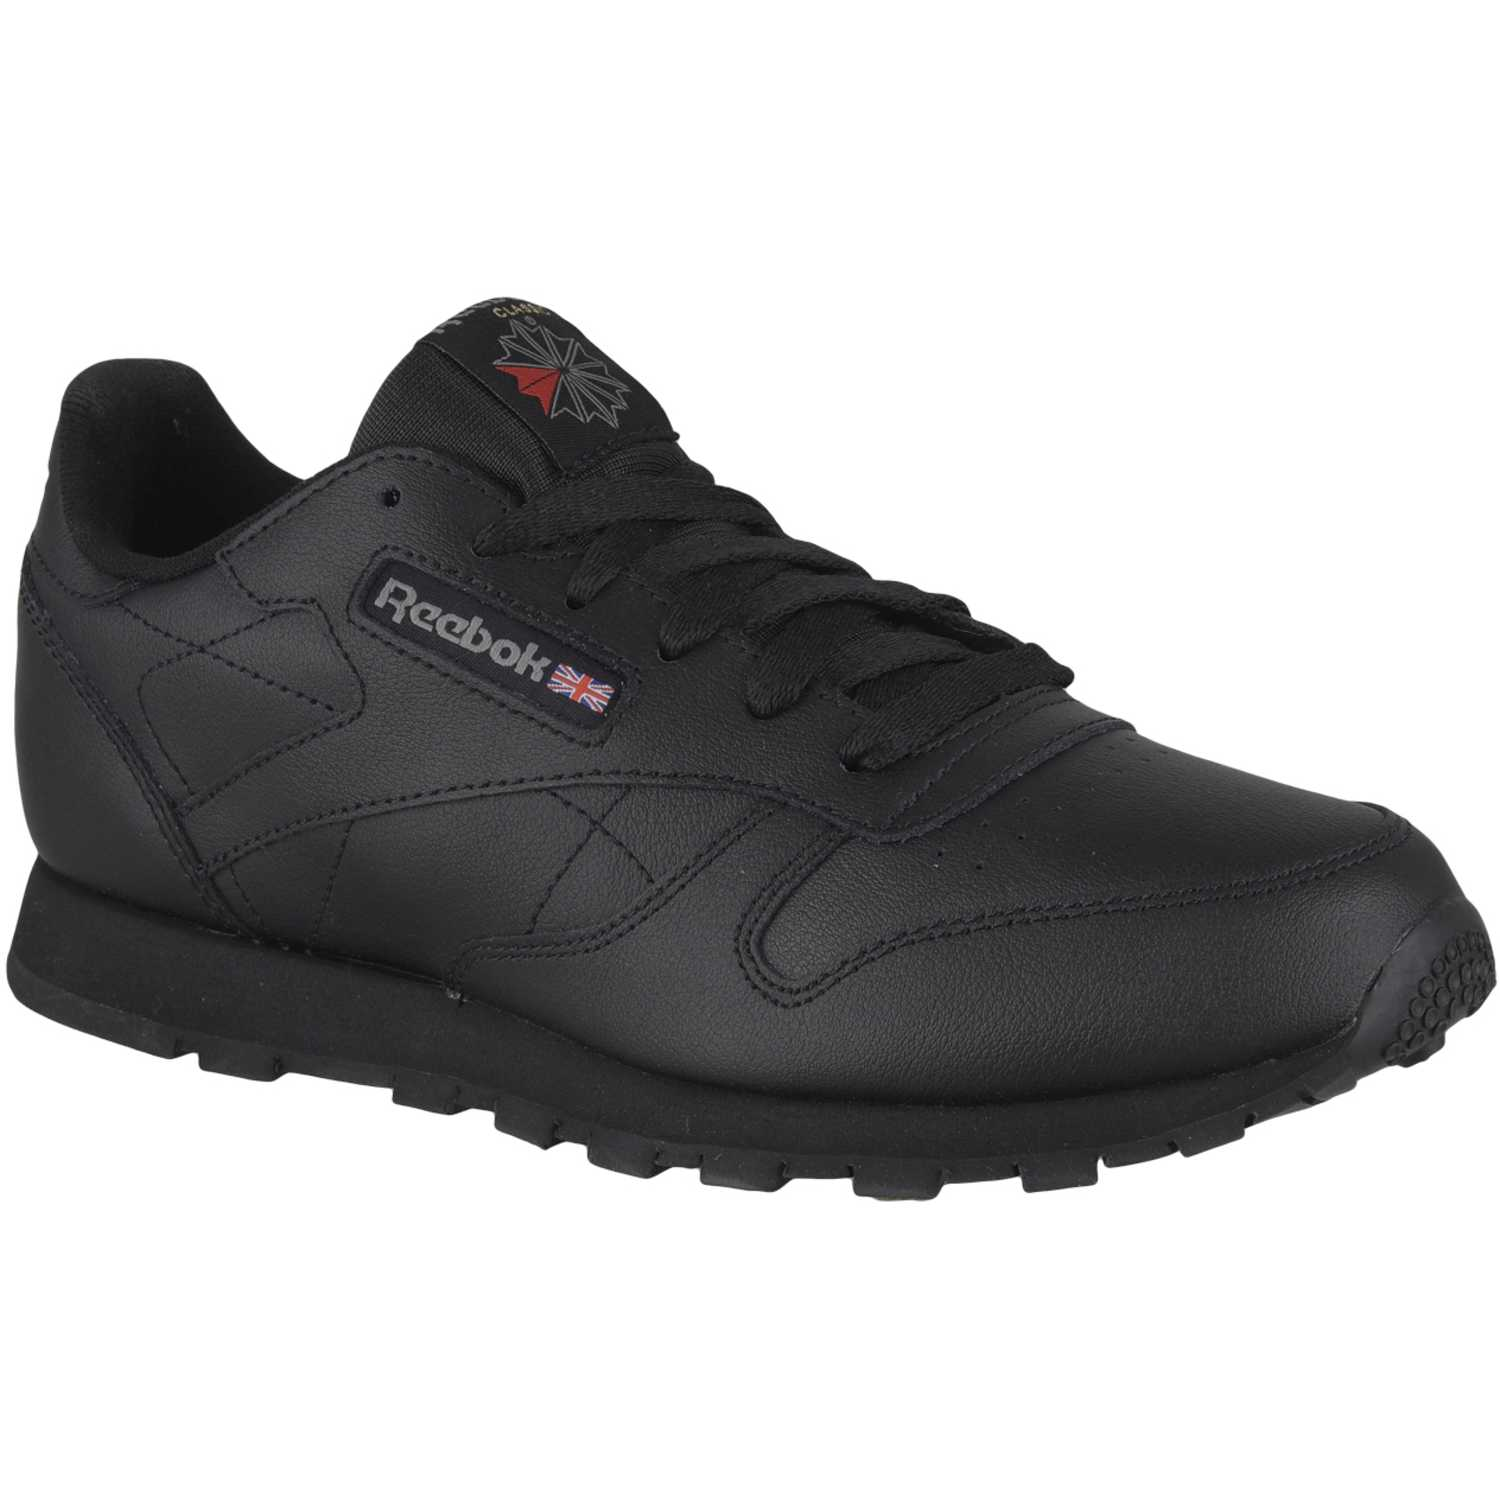 Reebok classic leather Negro Walking